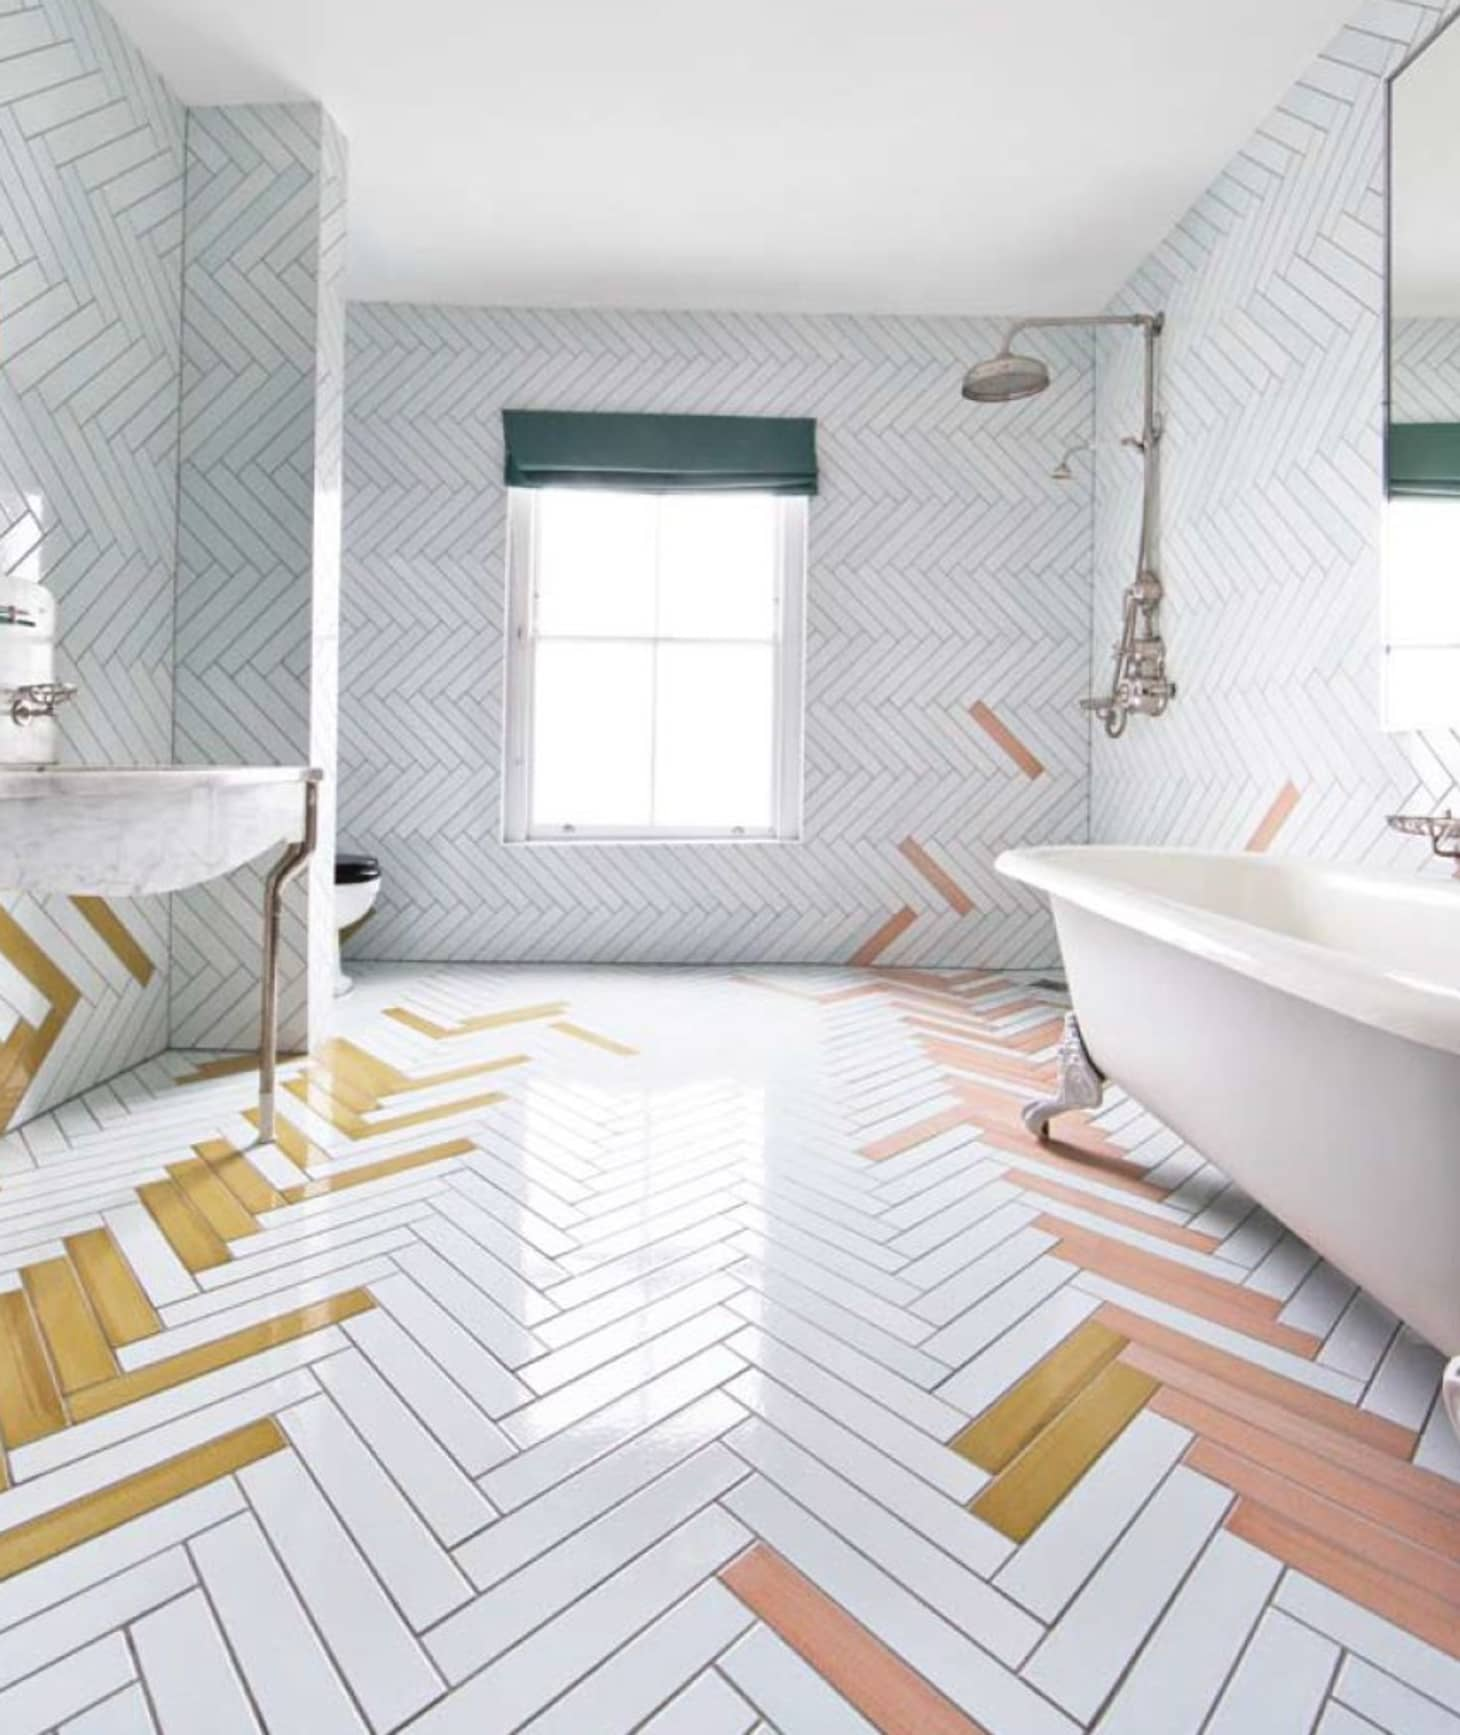 Bathroom Floor Tile Patterns Using Cheap In-Stock Options